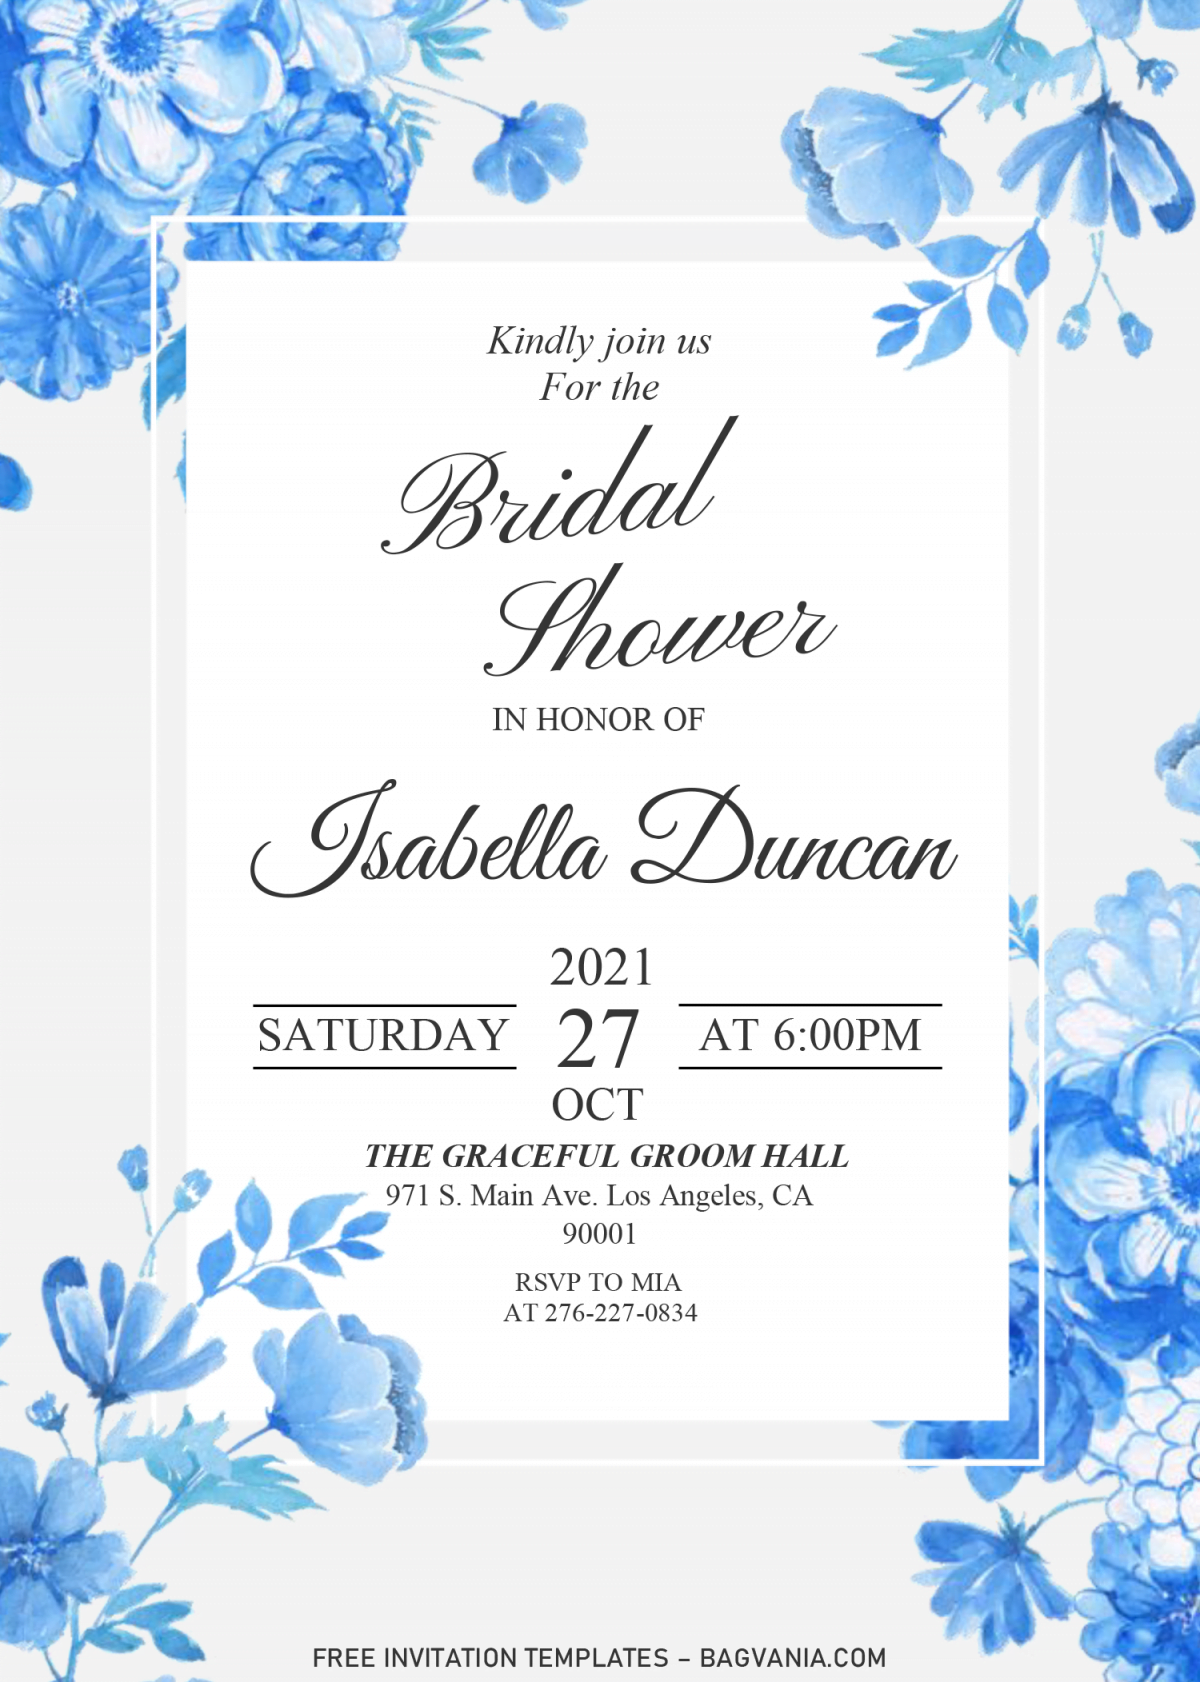 Modern Floral Invitation Templates - Editable .DOCX and has rectangle frame